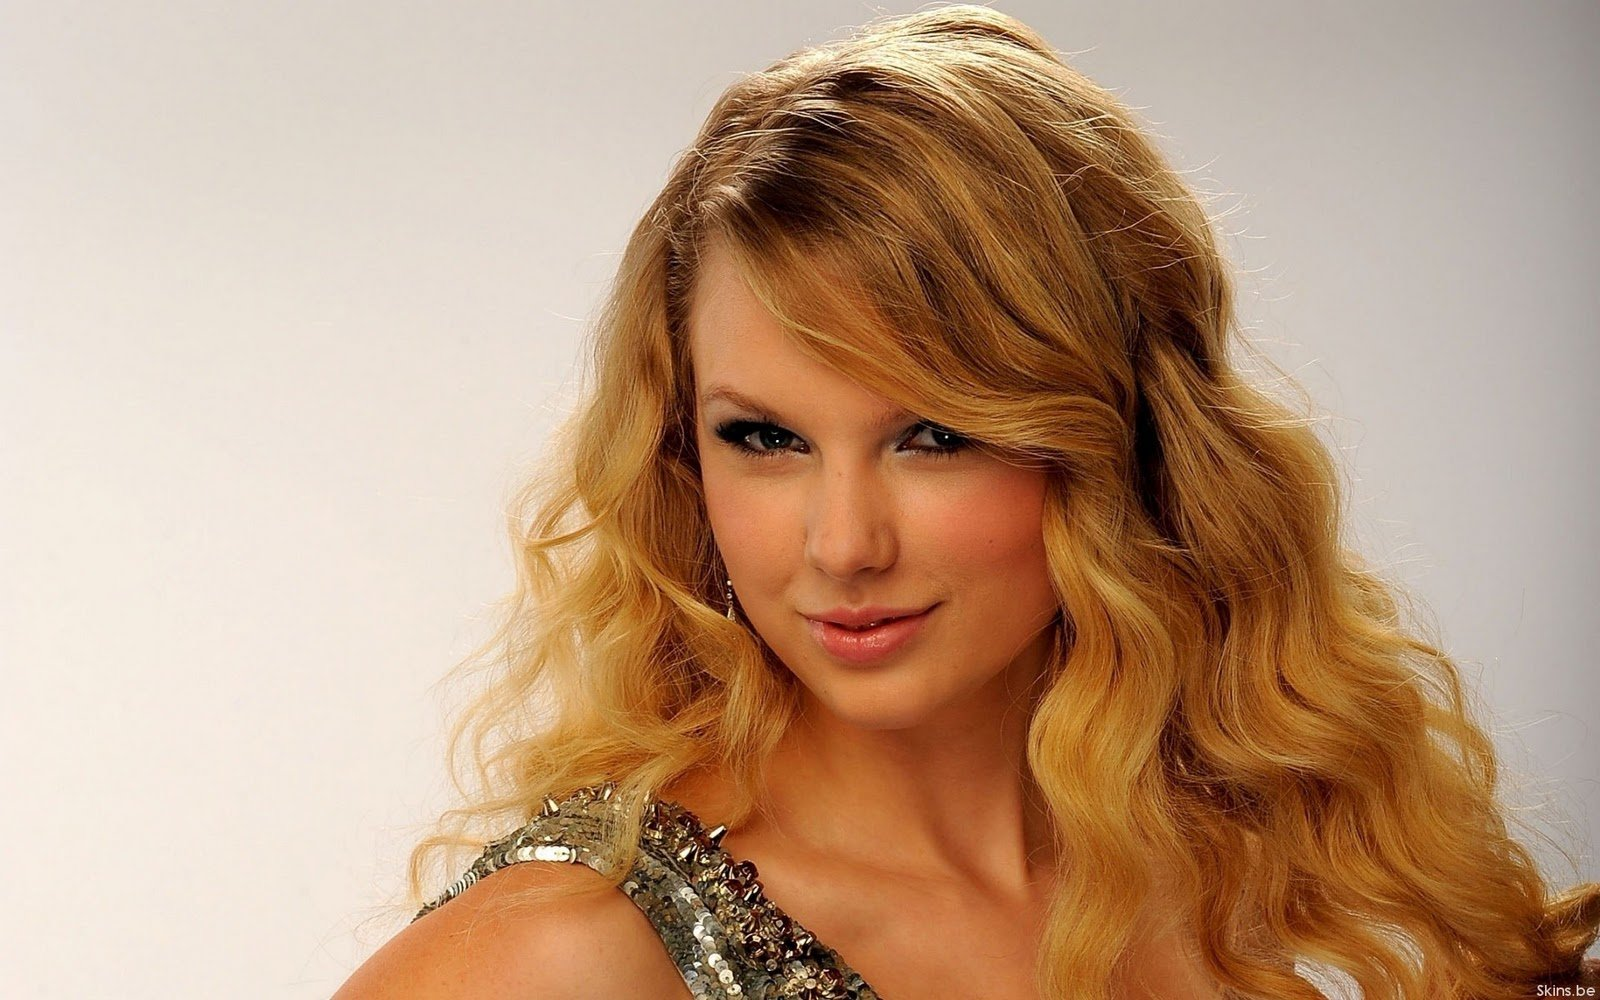 Hollywood Celebrity Taylor Swift Latest HD Wallpapers 1600x1000